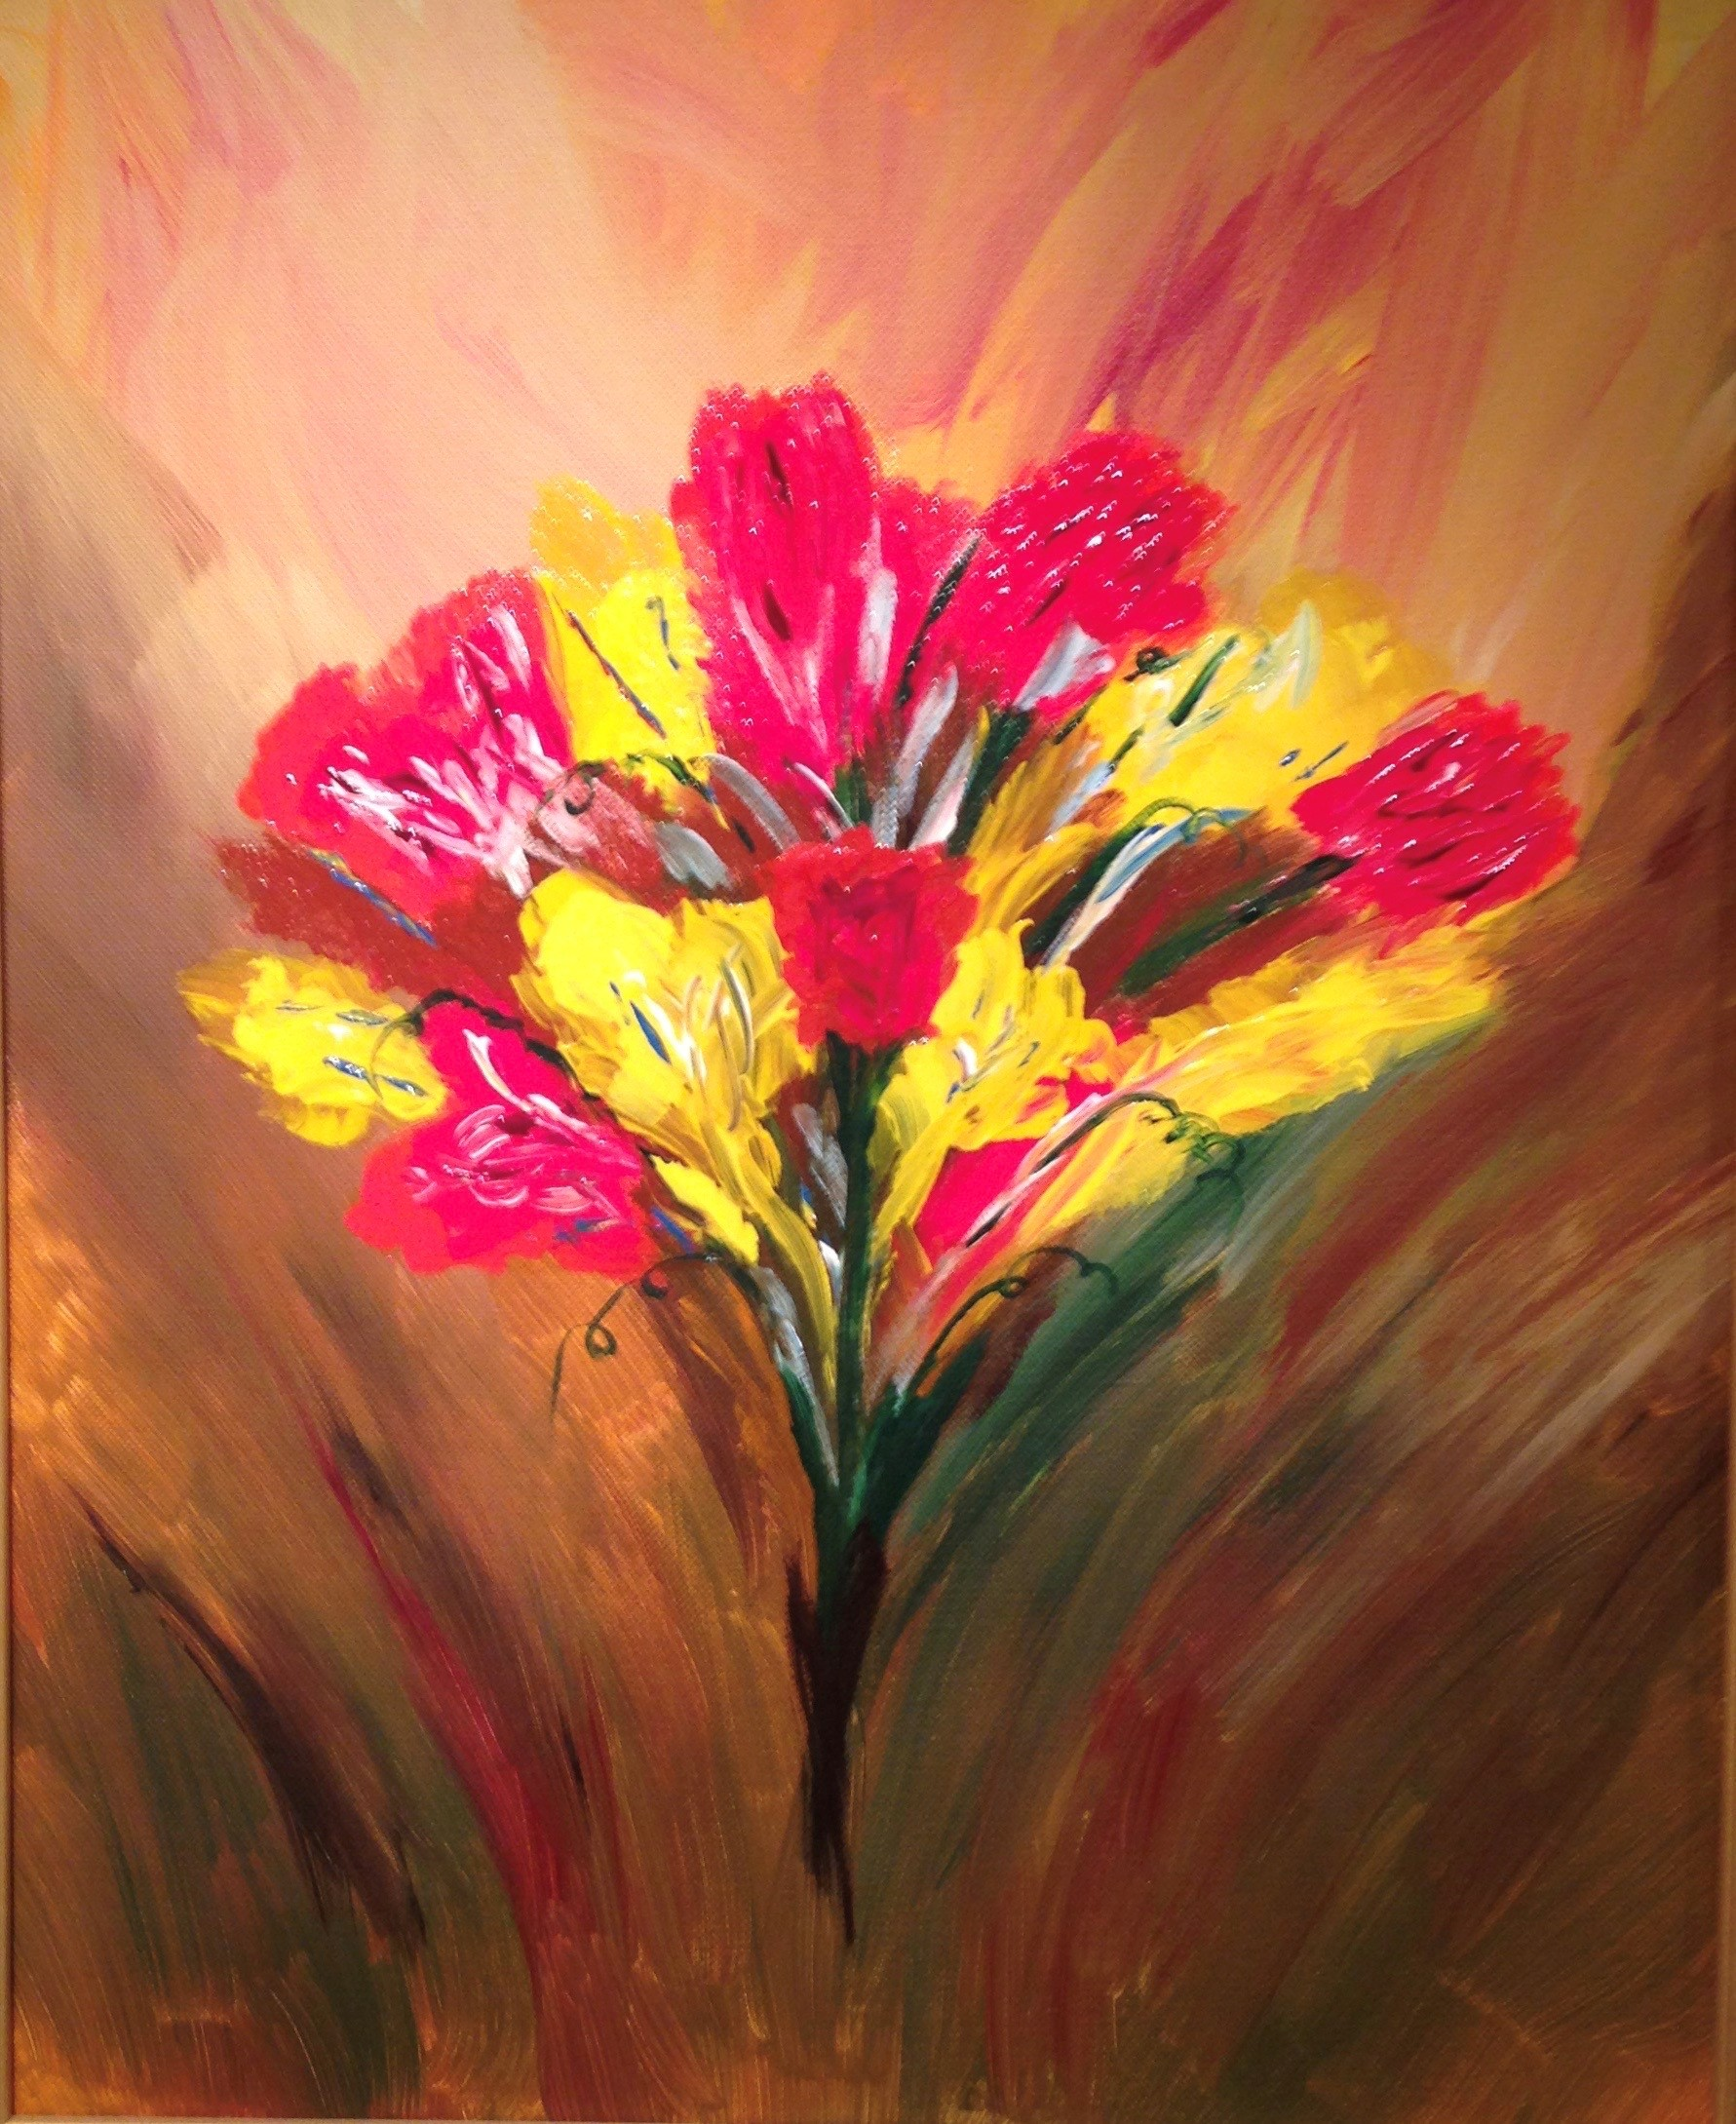 Flowers in Abstract.jpg